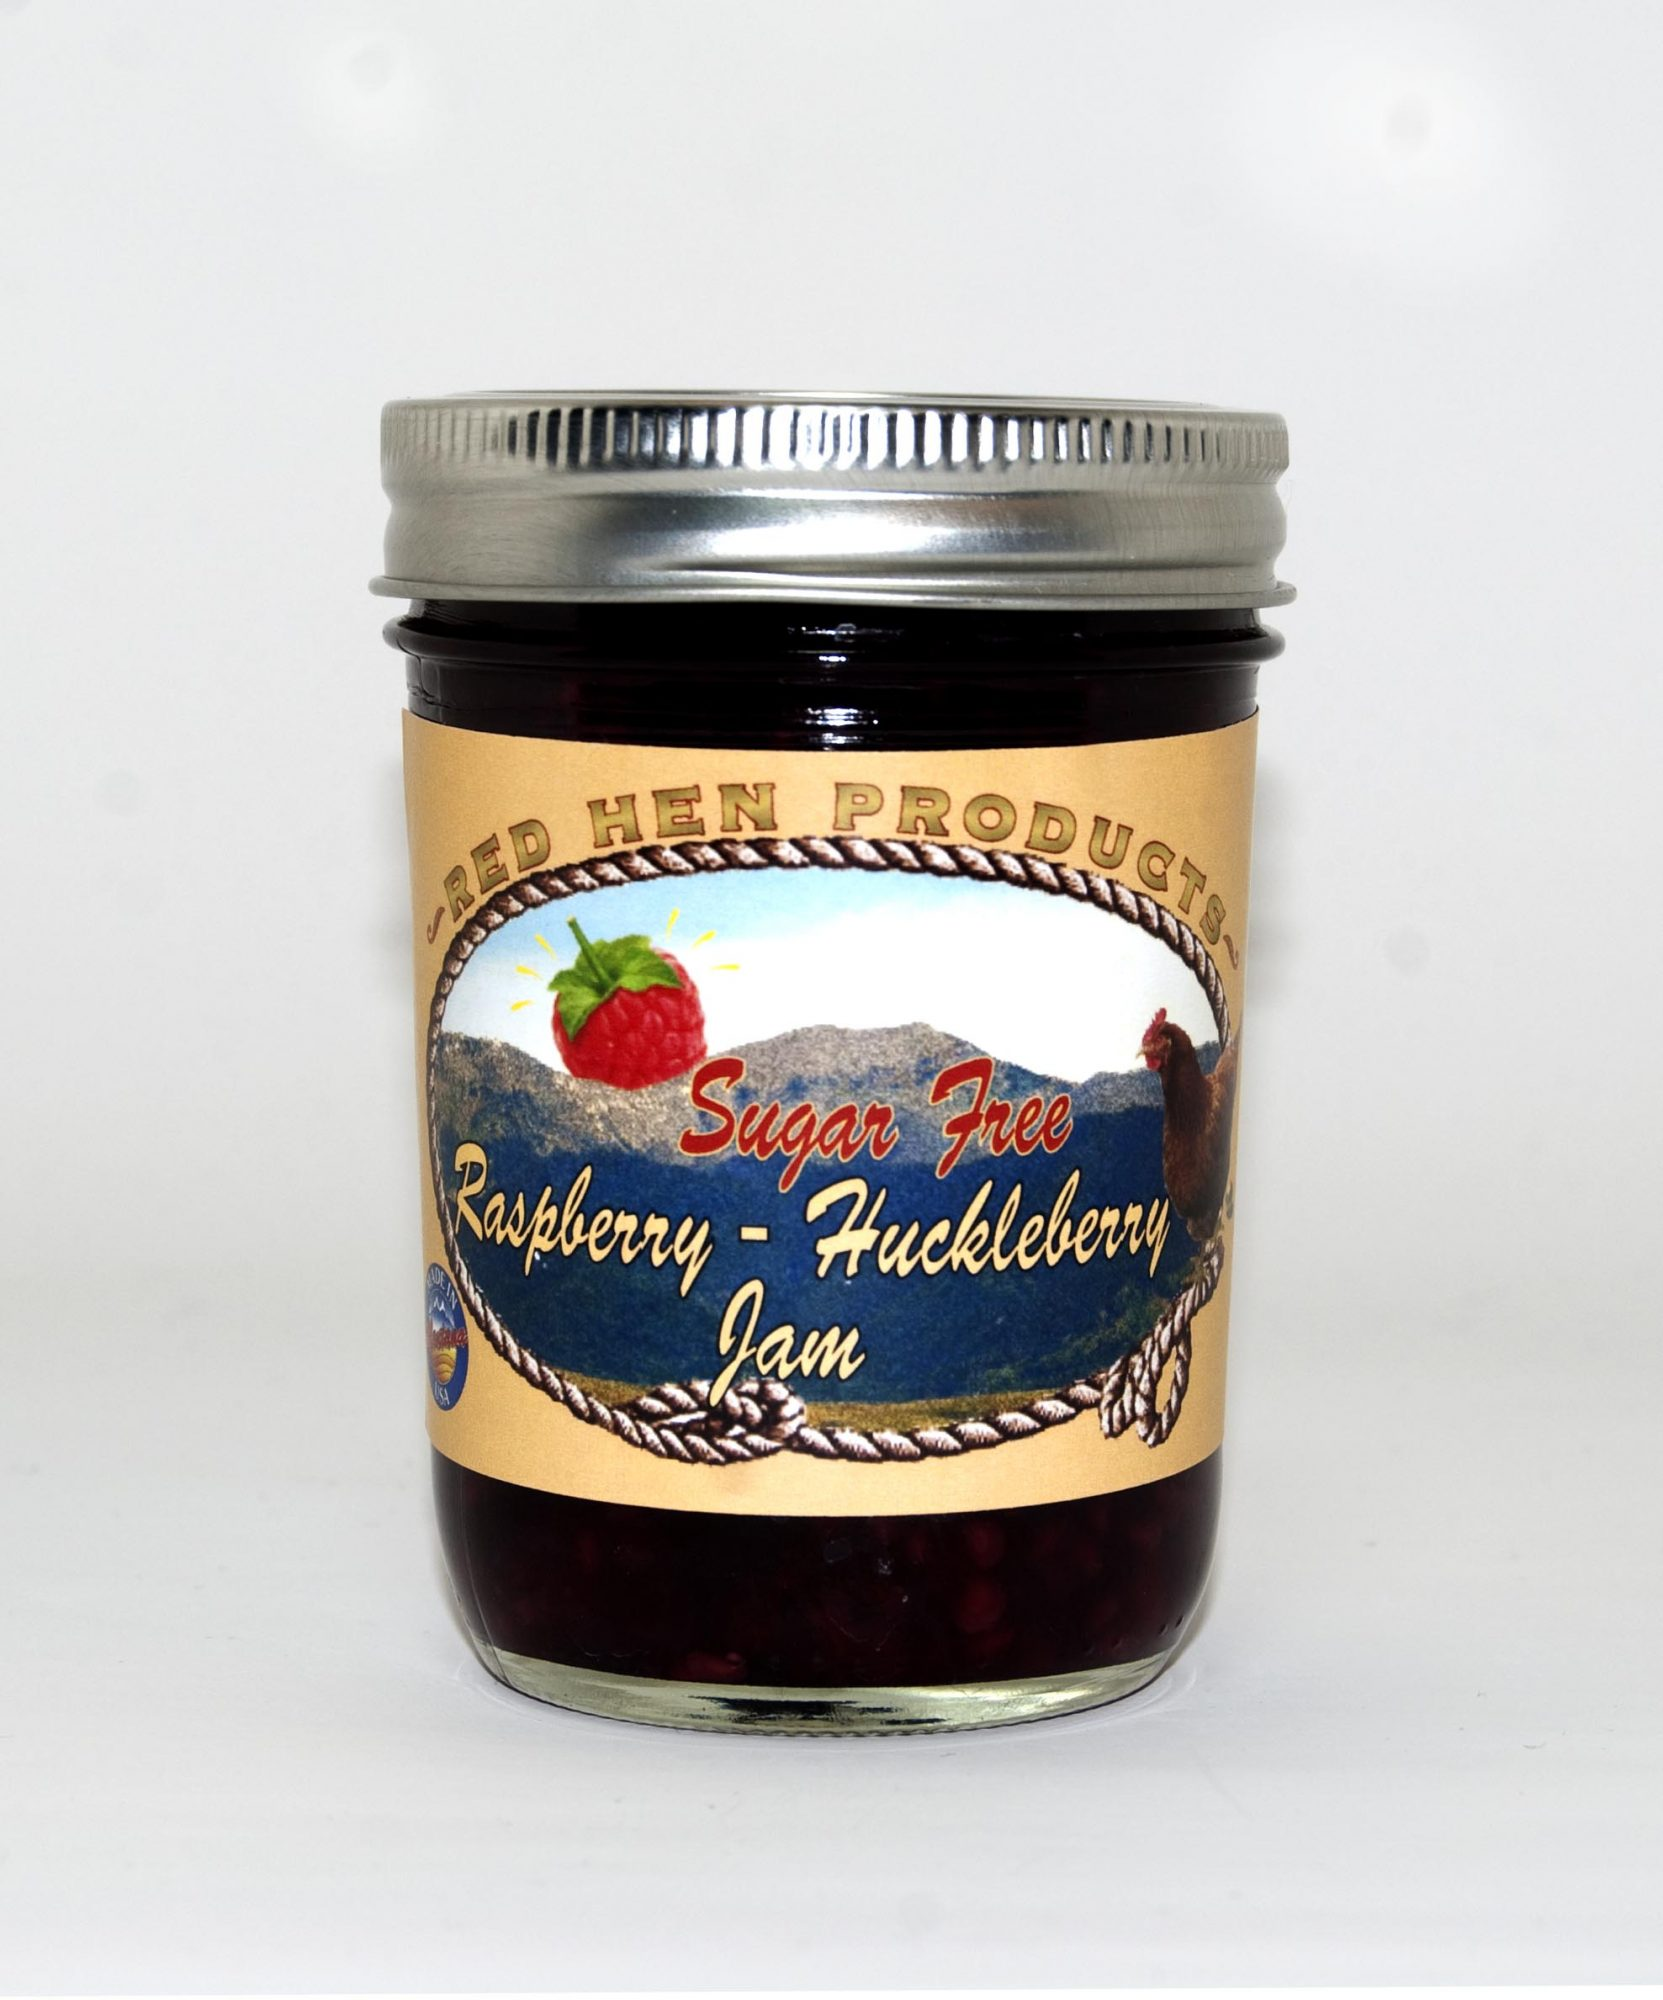 Sugar Free Raspberry-Huckleberry Jam